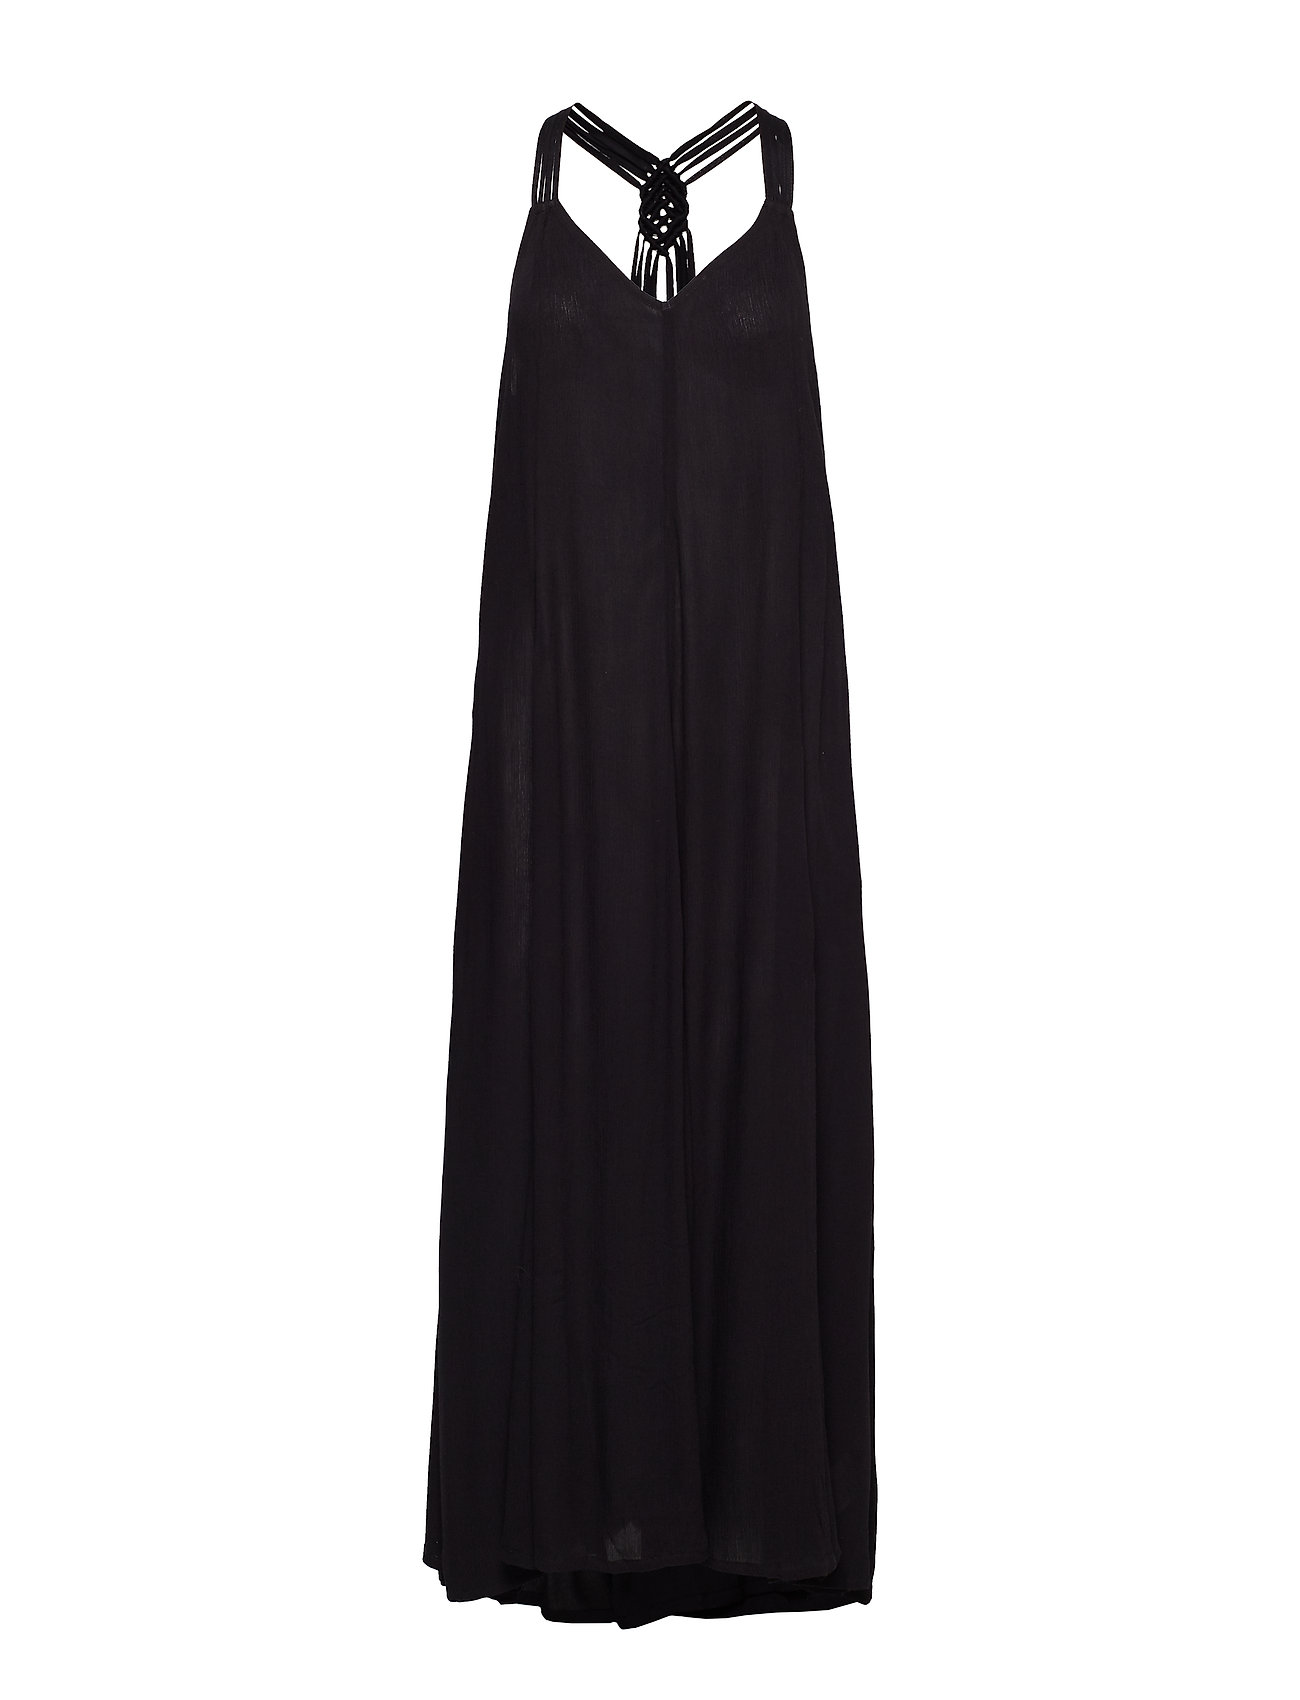 Superdry CARISSA MACRAME MAXI DRESS - BLACK